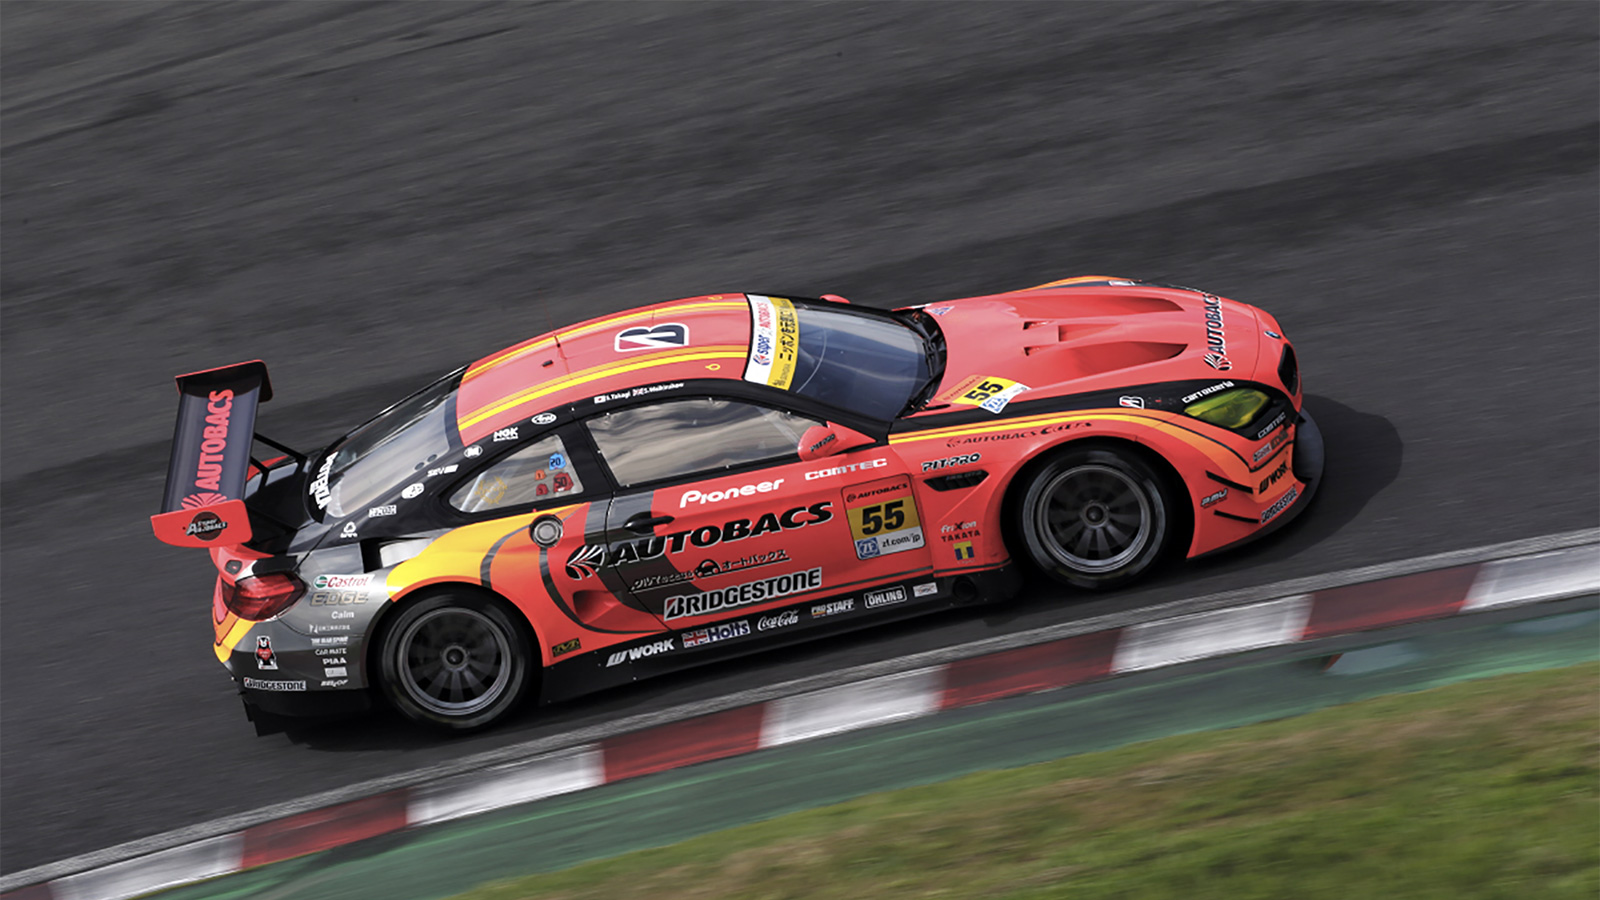 Huge Frustration for Super GT Racers Walkinshaw and Takagi as Contact Leads to Early Retirement from Suzuka 1000km